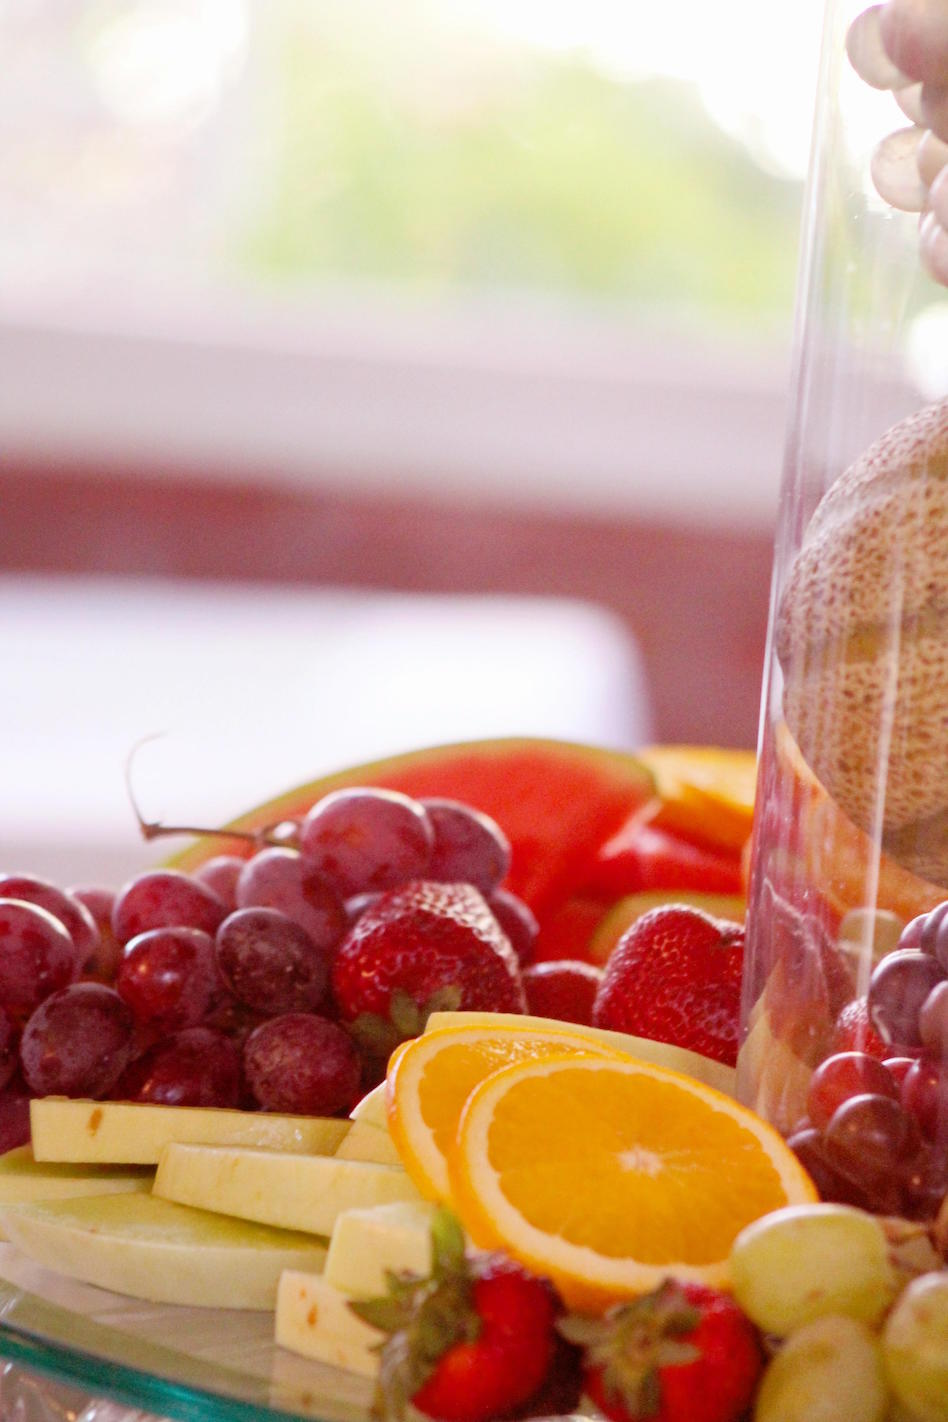 Healthy diet helping healthy recovery